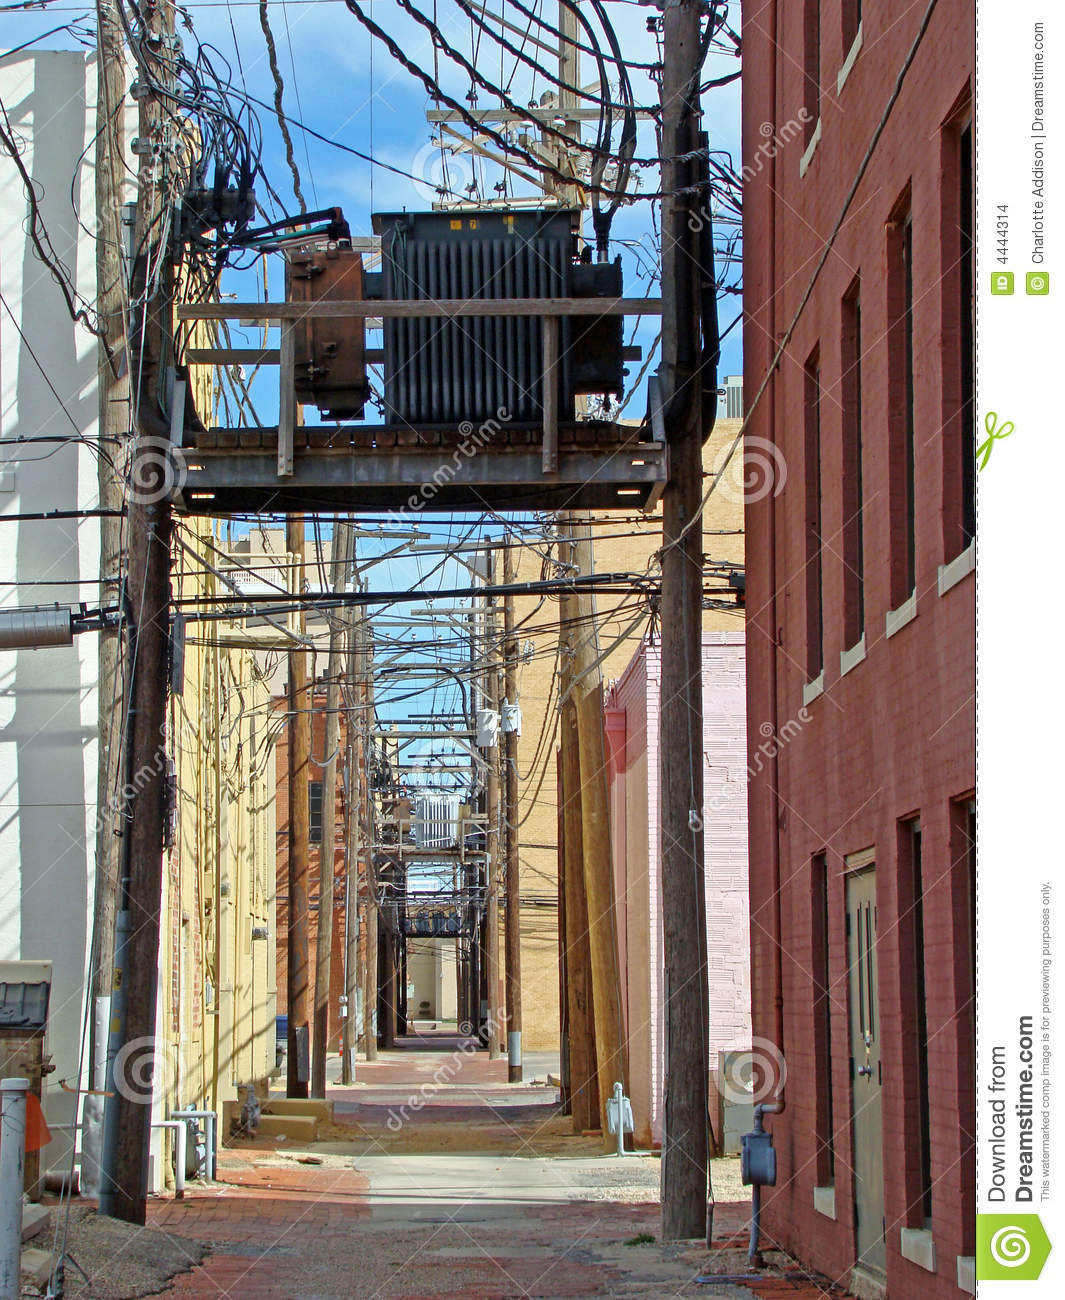 Wired Stock Photo Image Of Utilities Energy Cluttered 4444314 Metal Buildings